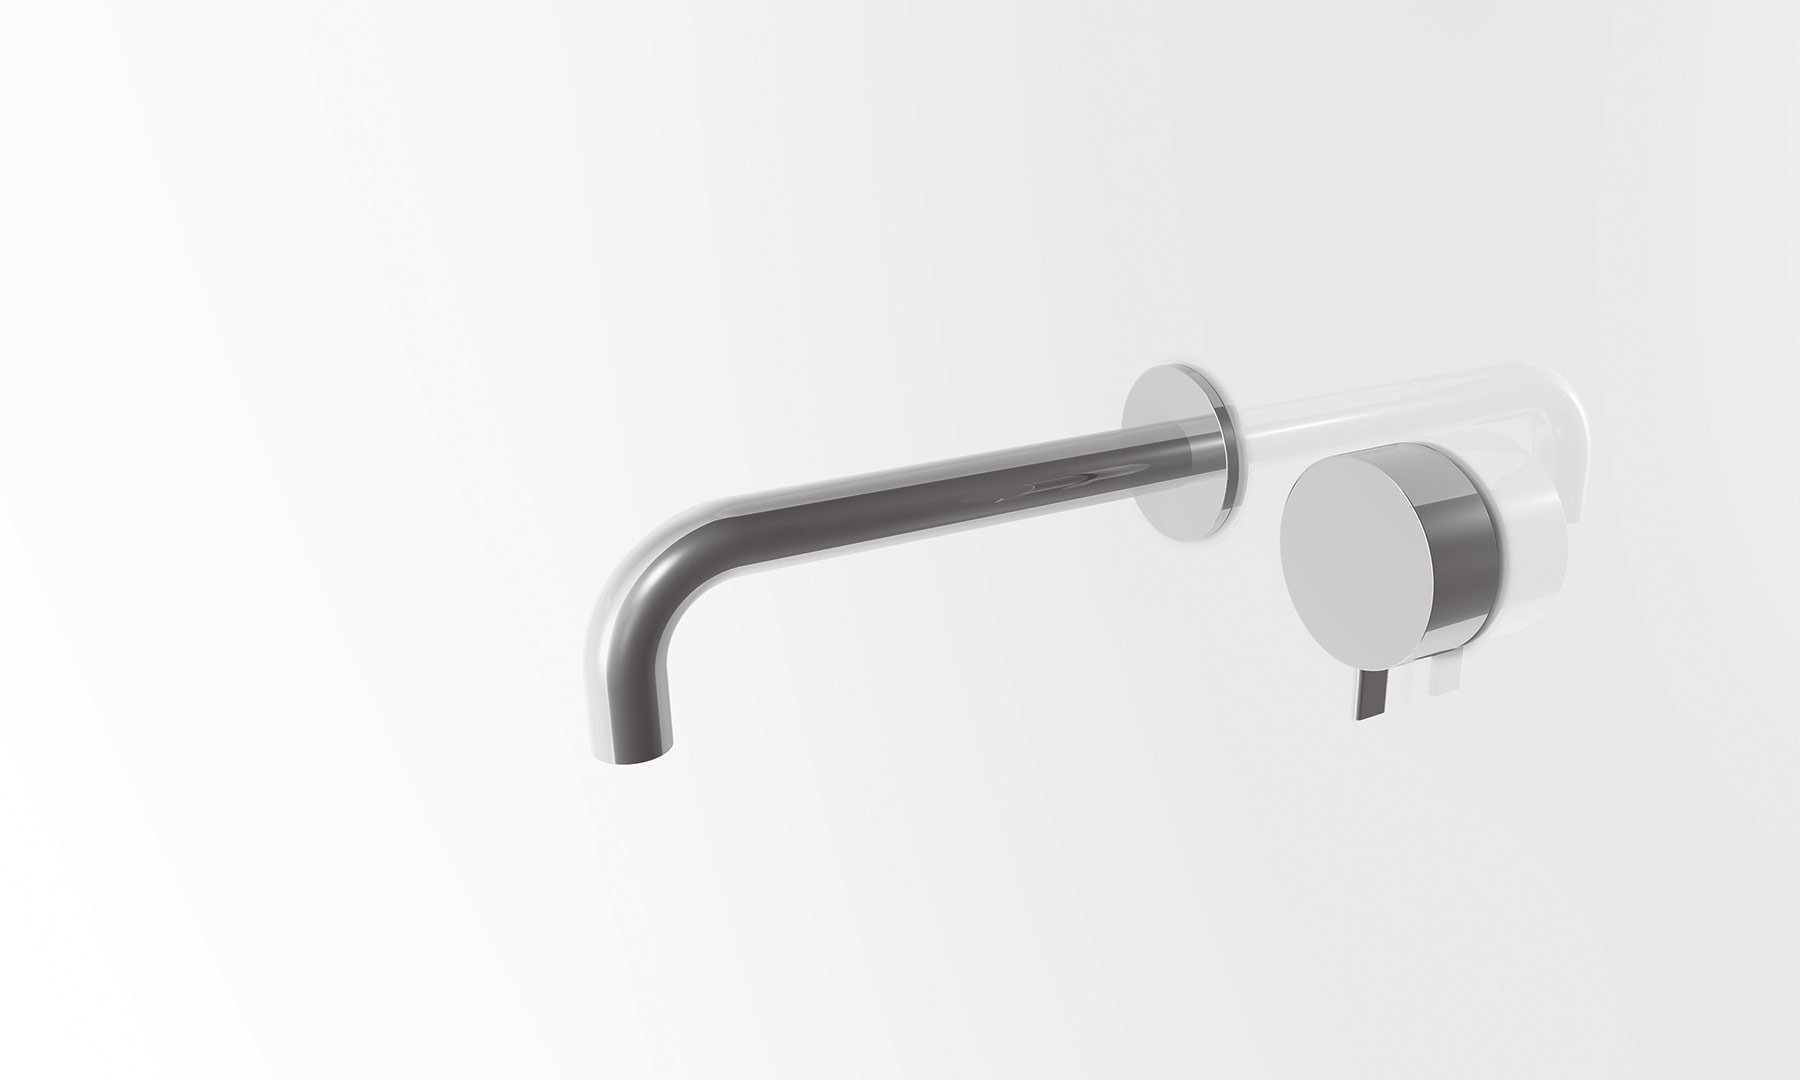 bridge faucet two k detalle a triton faucets mounted net handle mount wall kohler buyplumbing cp product syle in